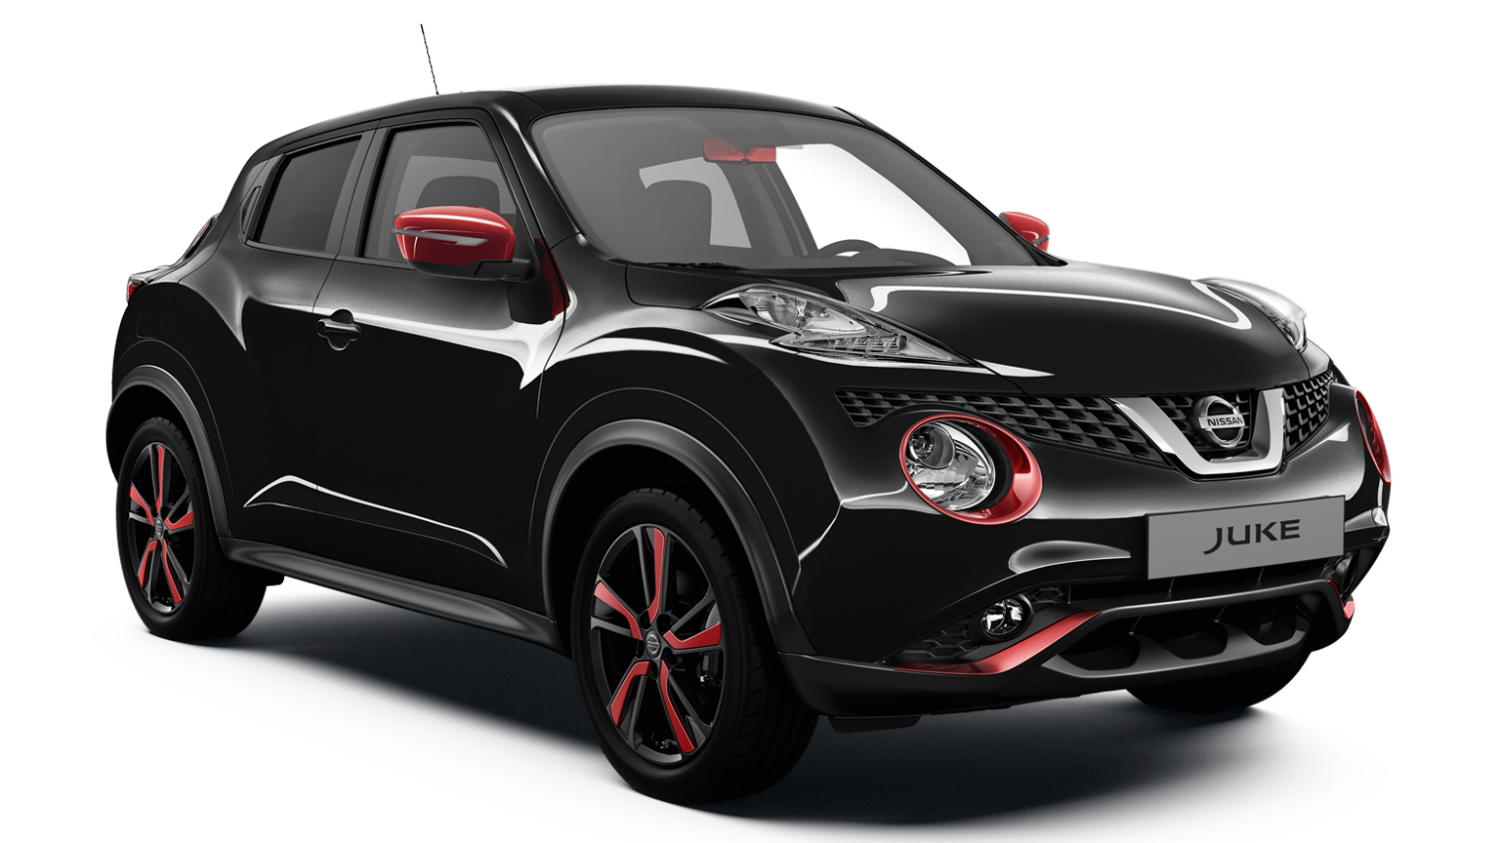 precios y versiones nissan juke suv crossover nissan. Black Bedroom Furniture Sets. Home Design Ideas